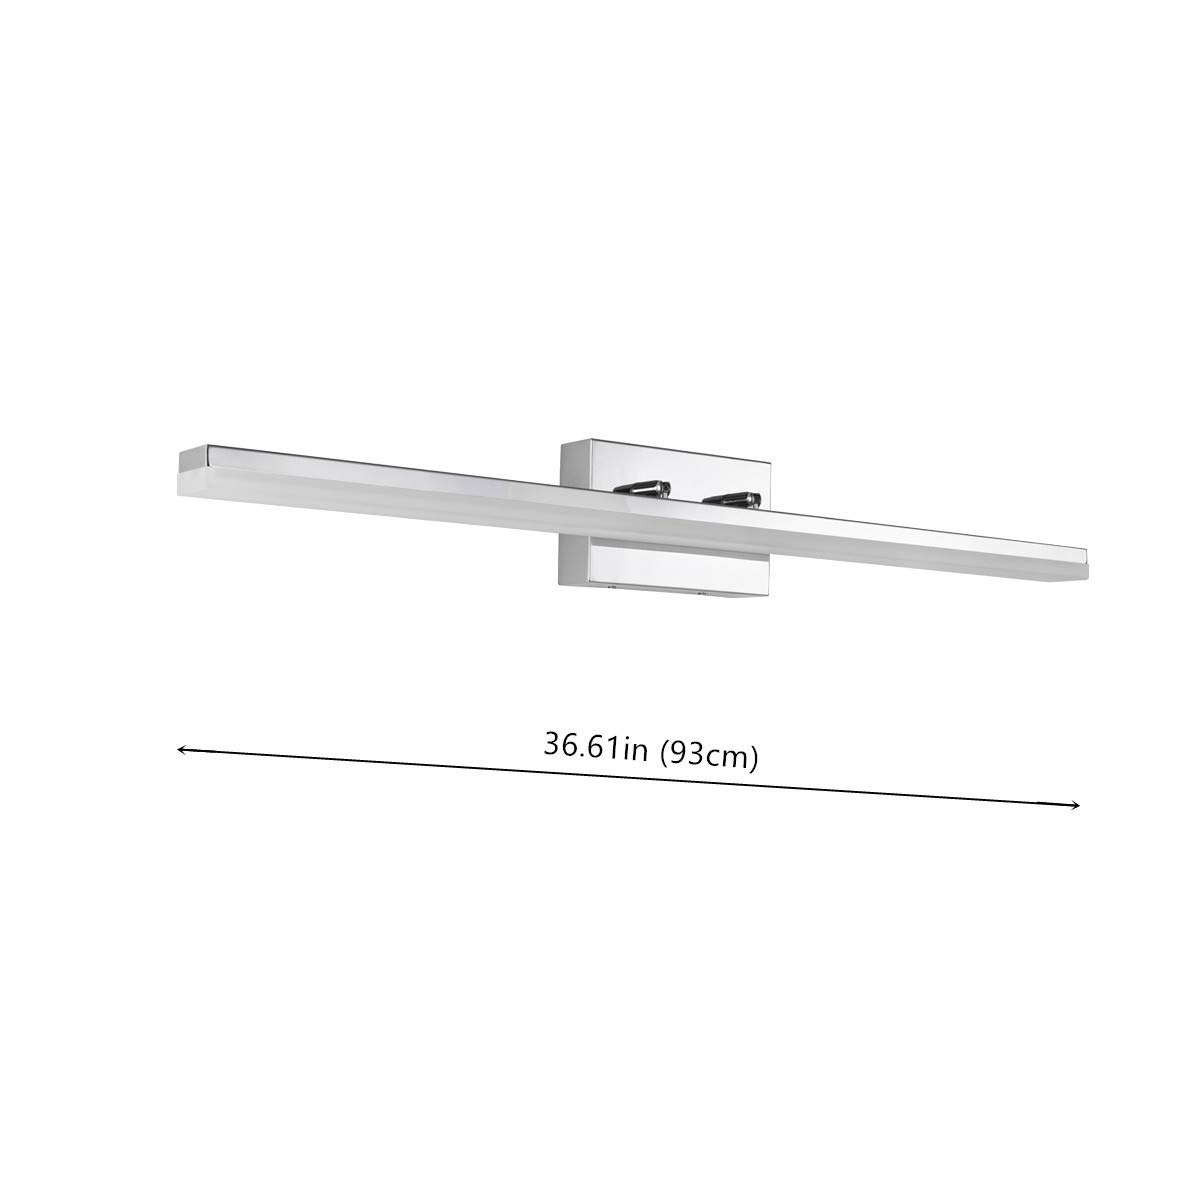 mirrea 36in Modern LED Vanity Light for Bathroom Lighting Dimmable 36w Cold White 5000K by mirrea (Image #7)